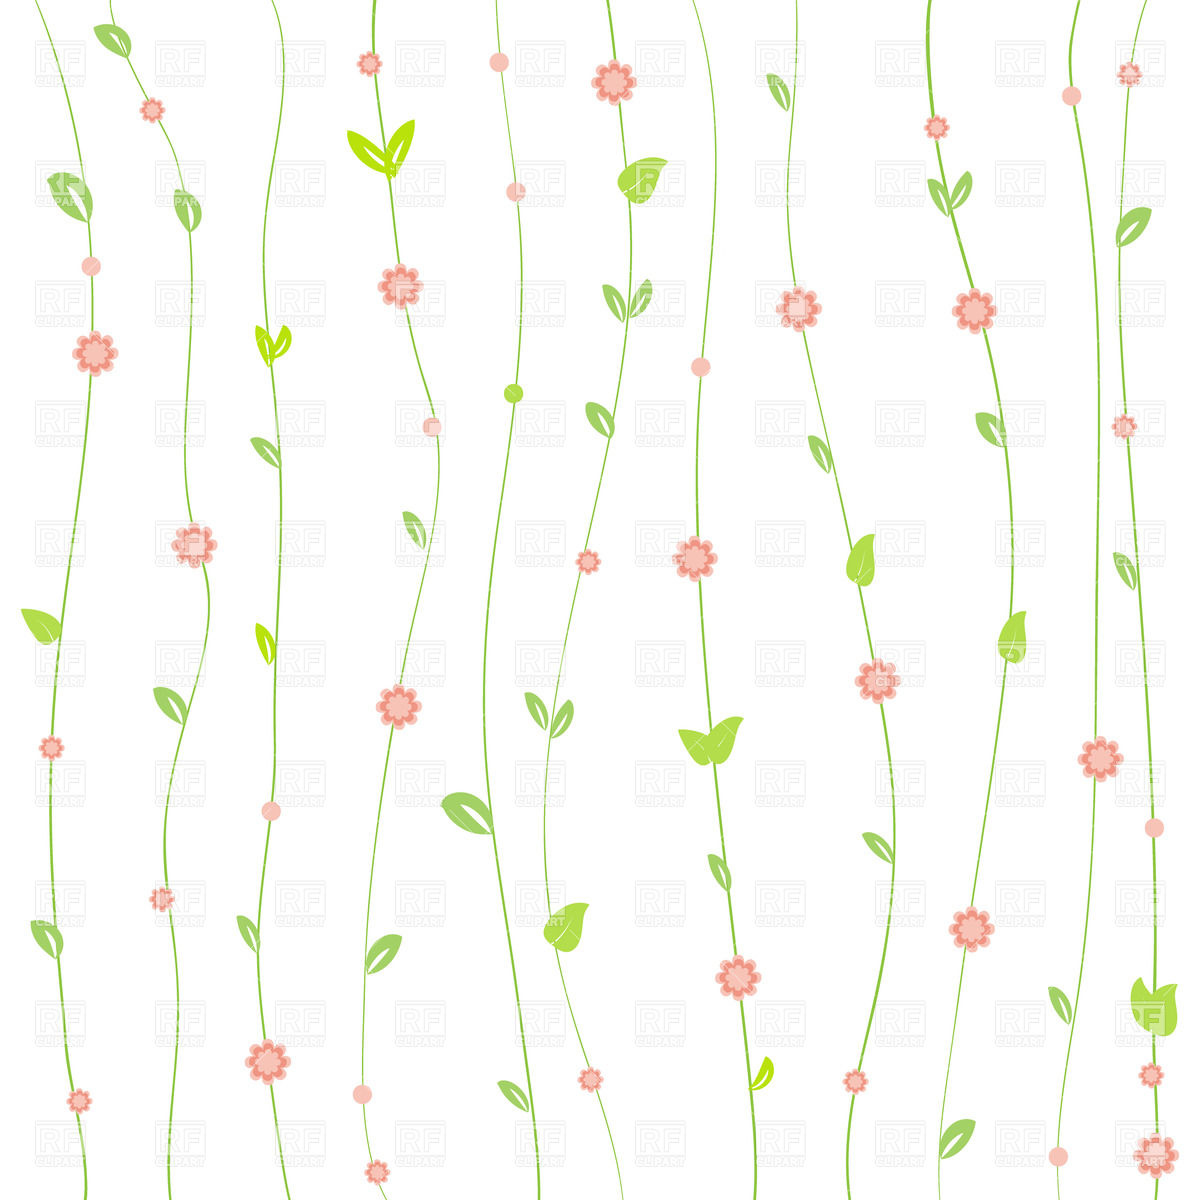 Background Clip Art Free Download.